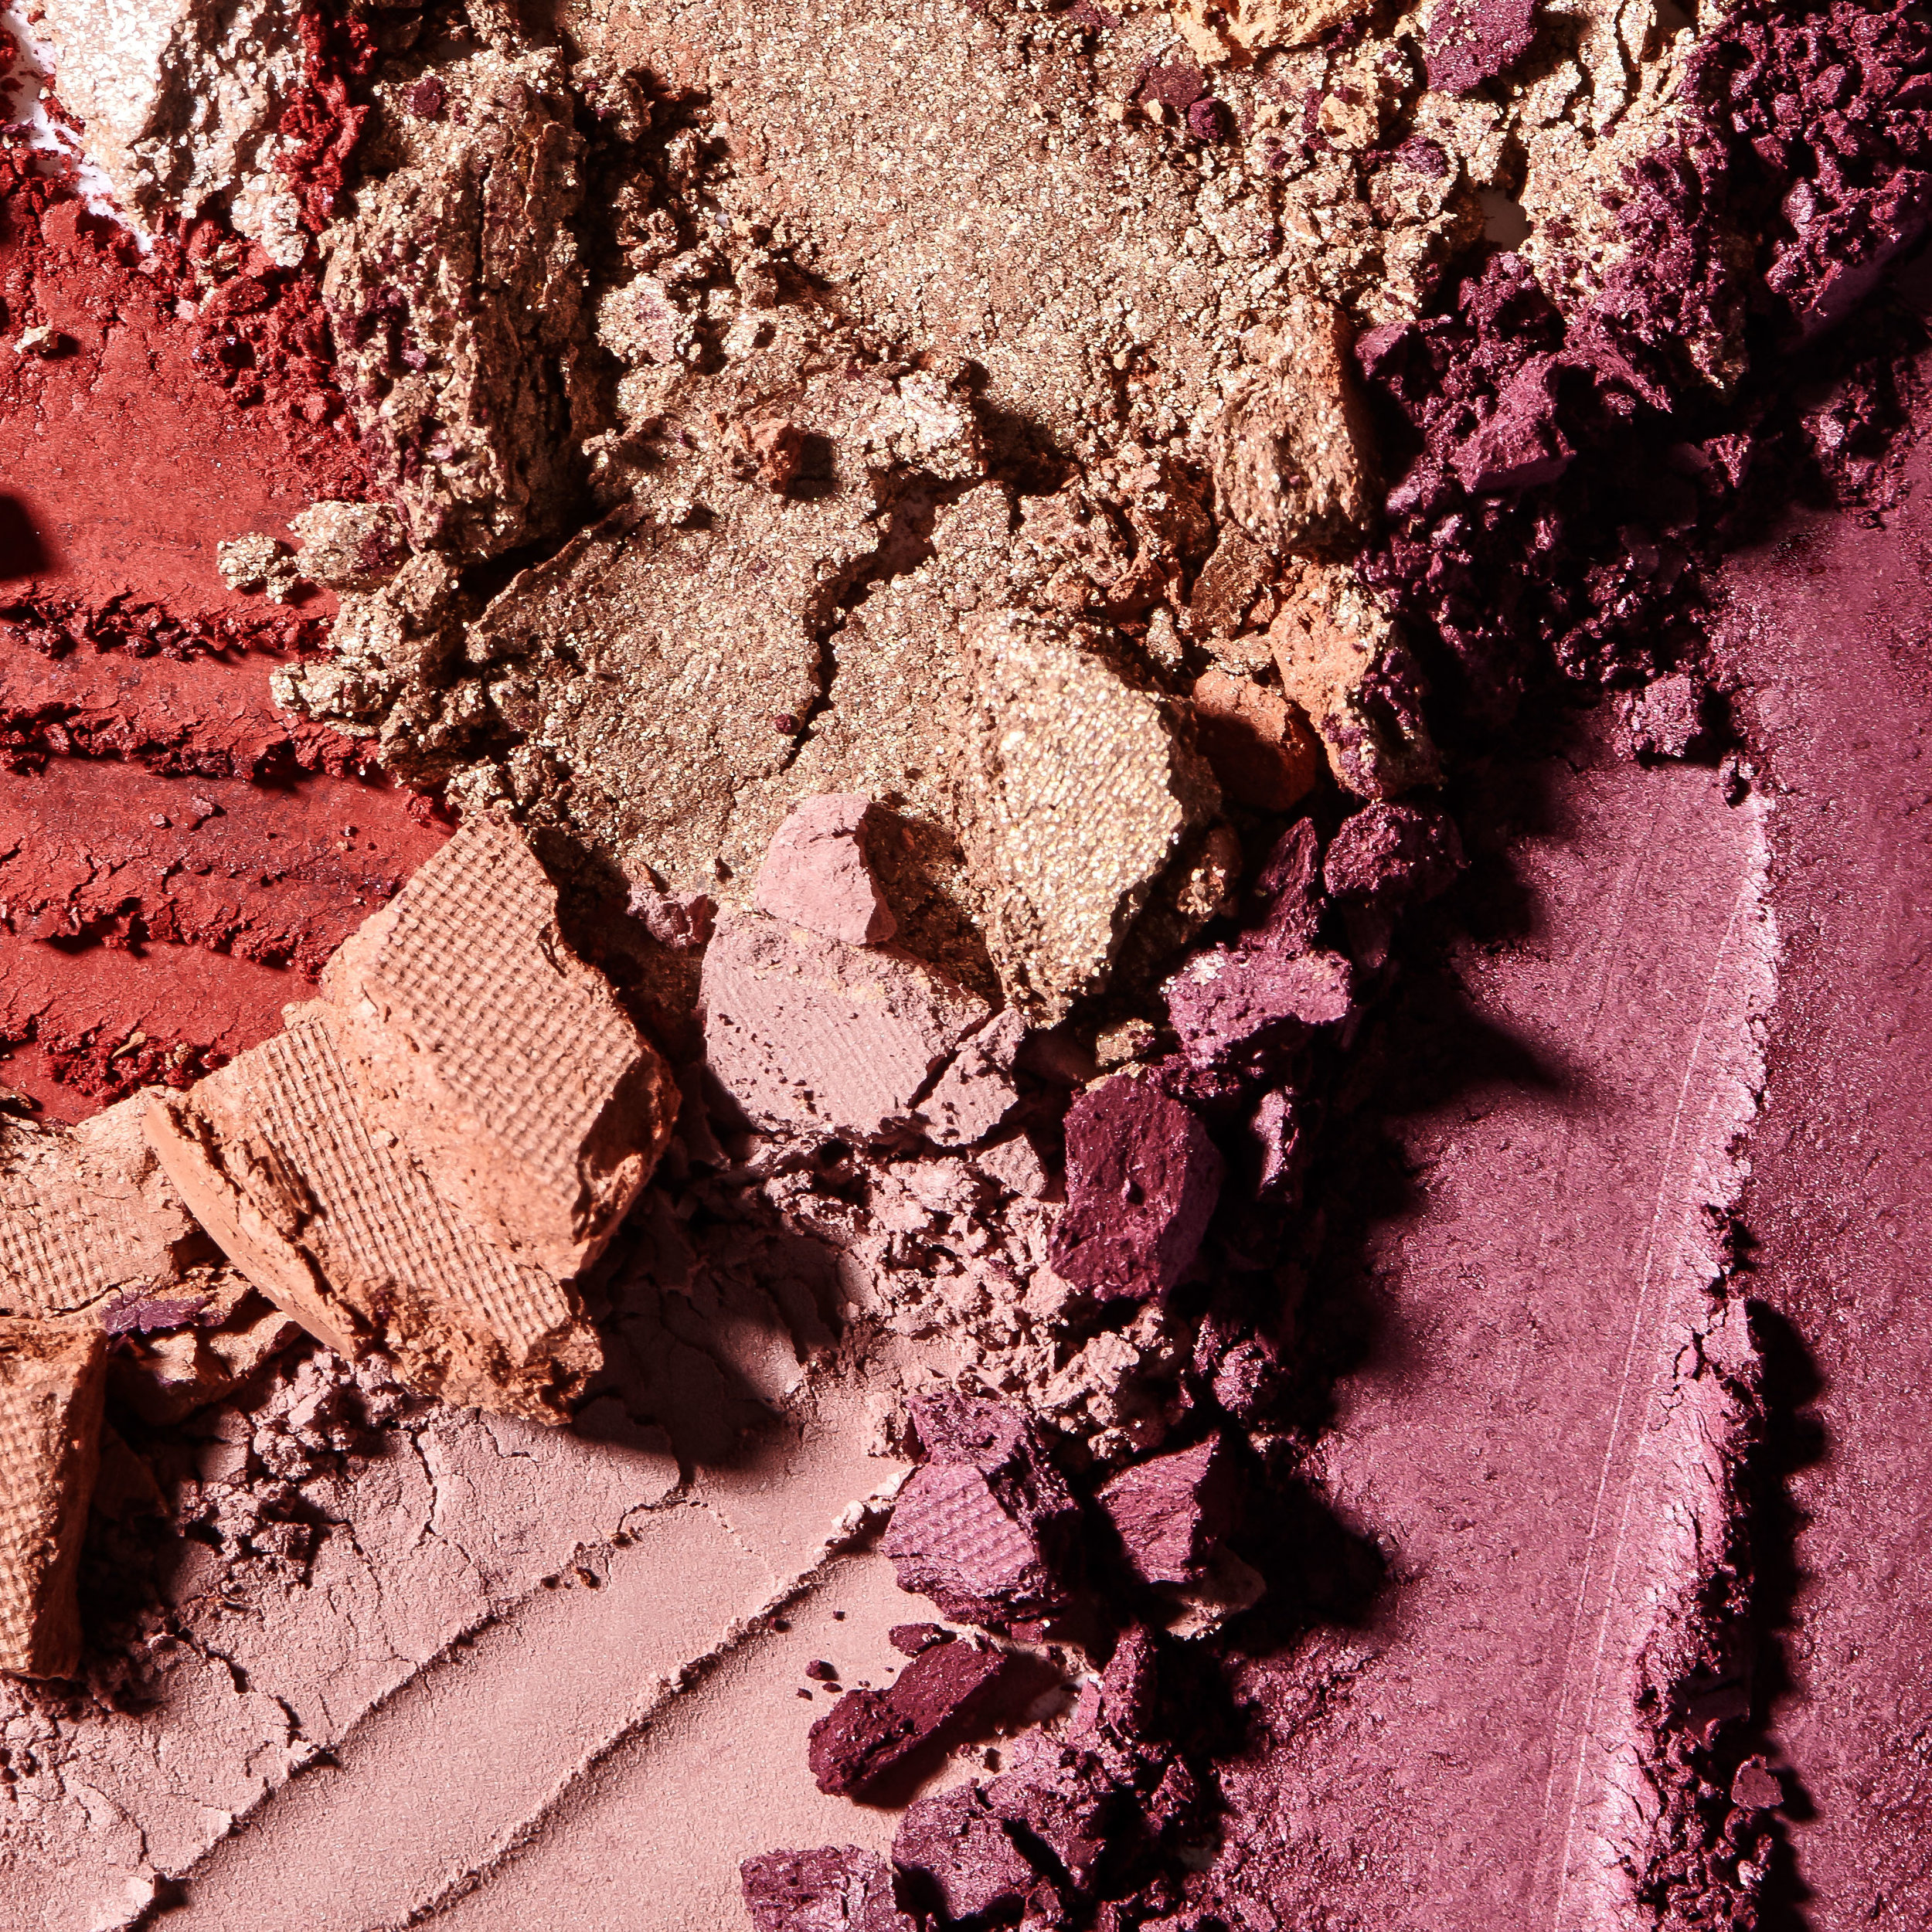 386_RVB_BE-PASSIONATE-ABOUT_palettesand-lipglosses_Sep18-KP5189.jpg